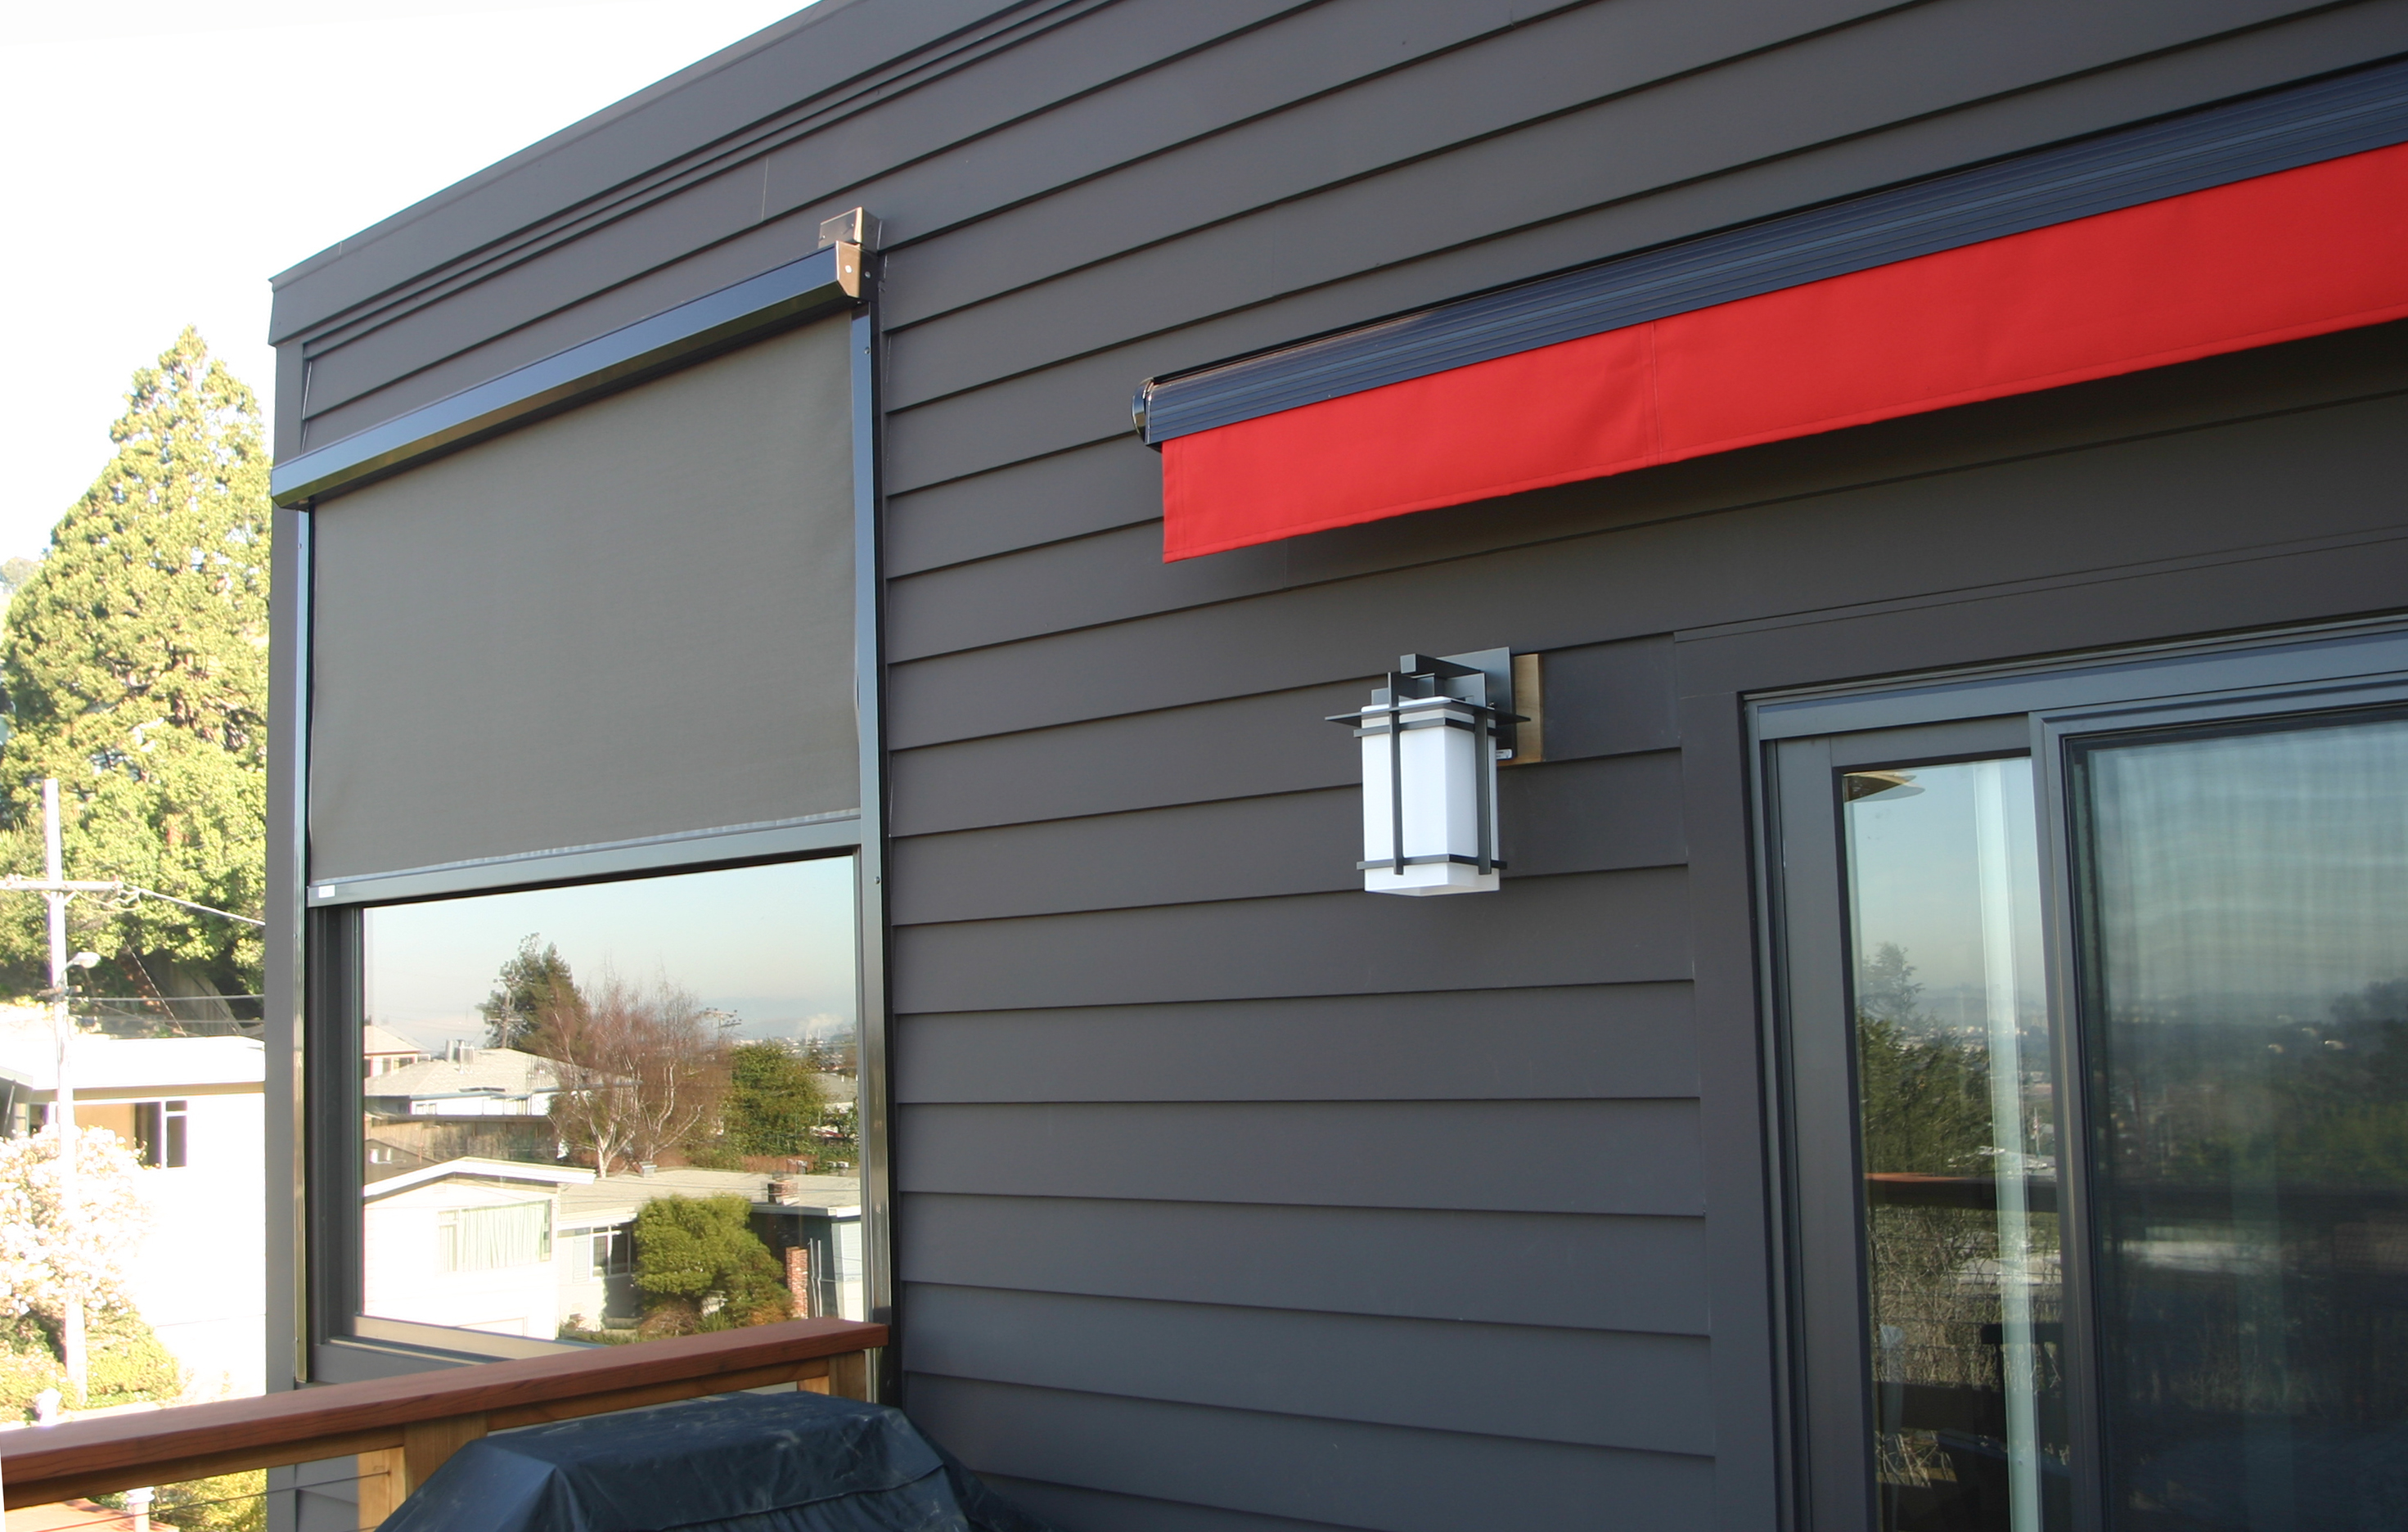 Exterior window shades and awning retracted and fibercement siding